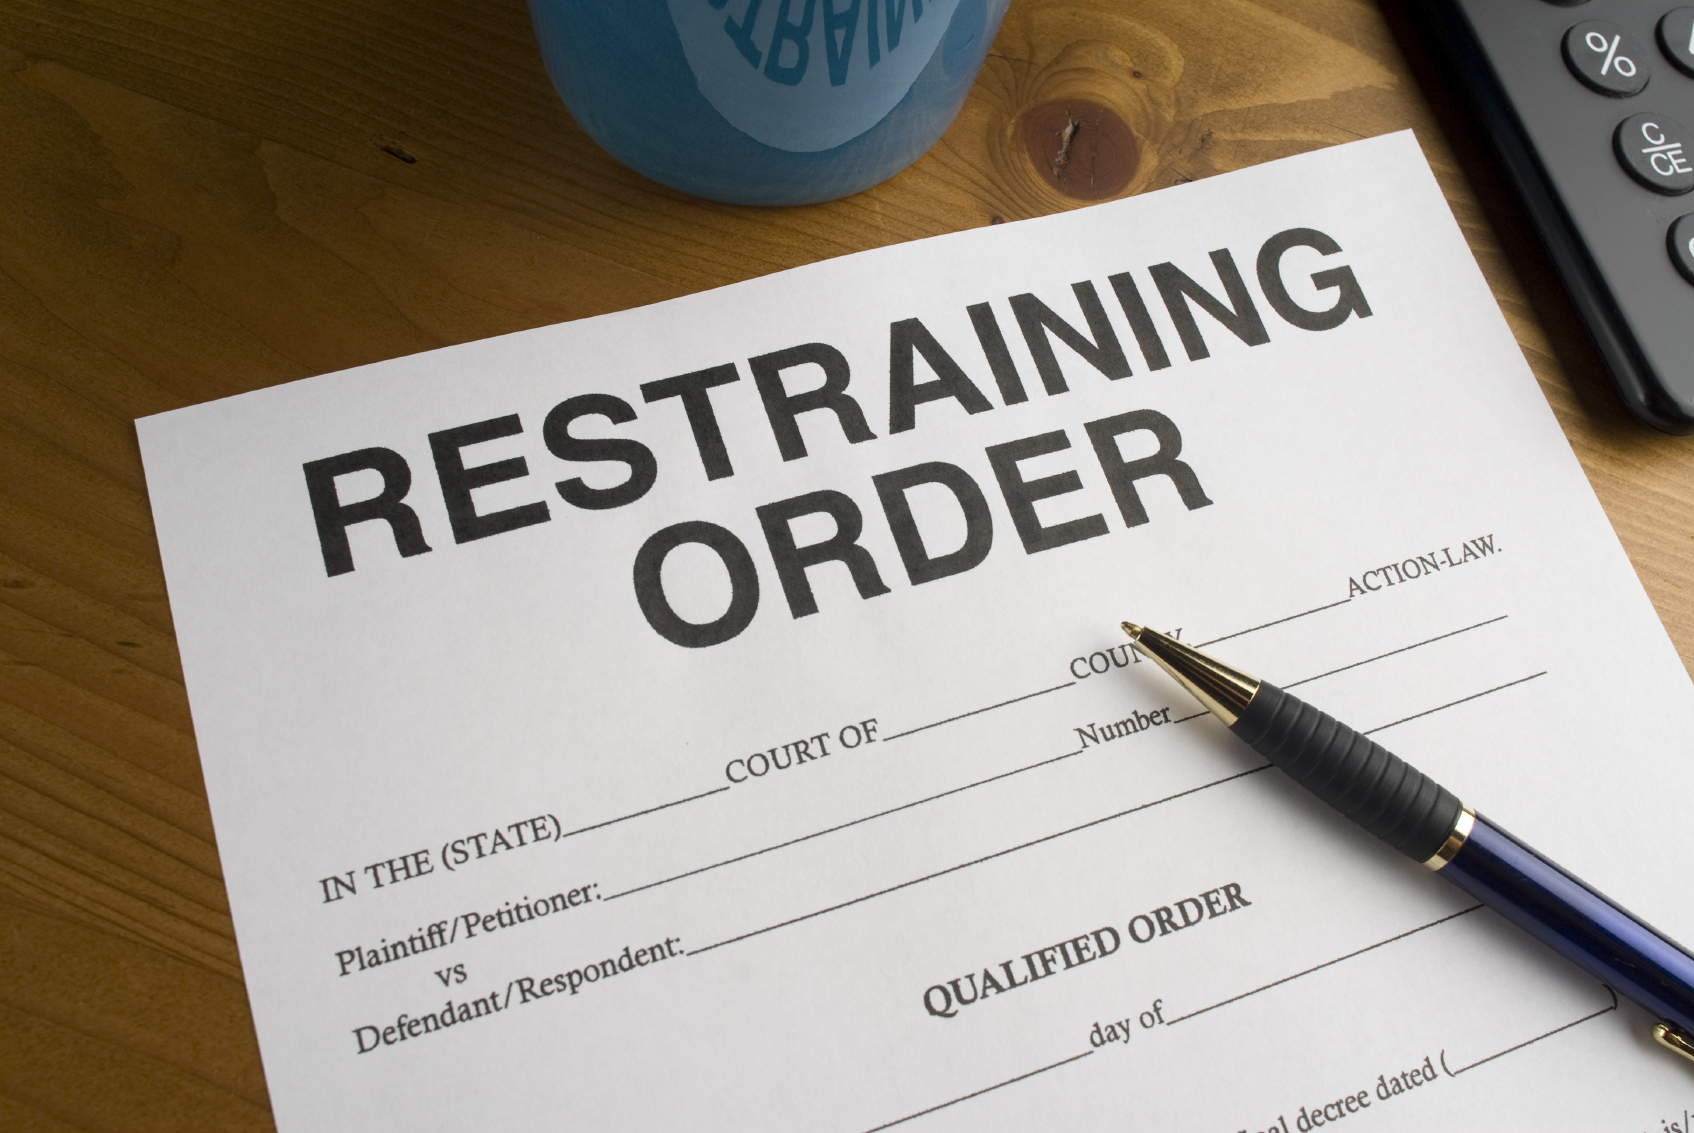 restraining order document - family law - criminal defense lawyer - lyons snyder collin plantation fl 33324